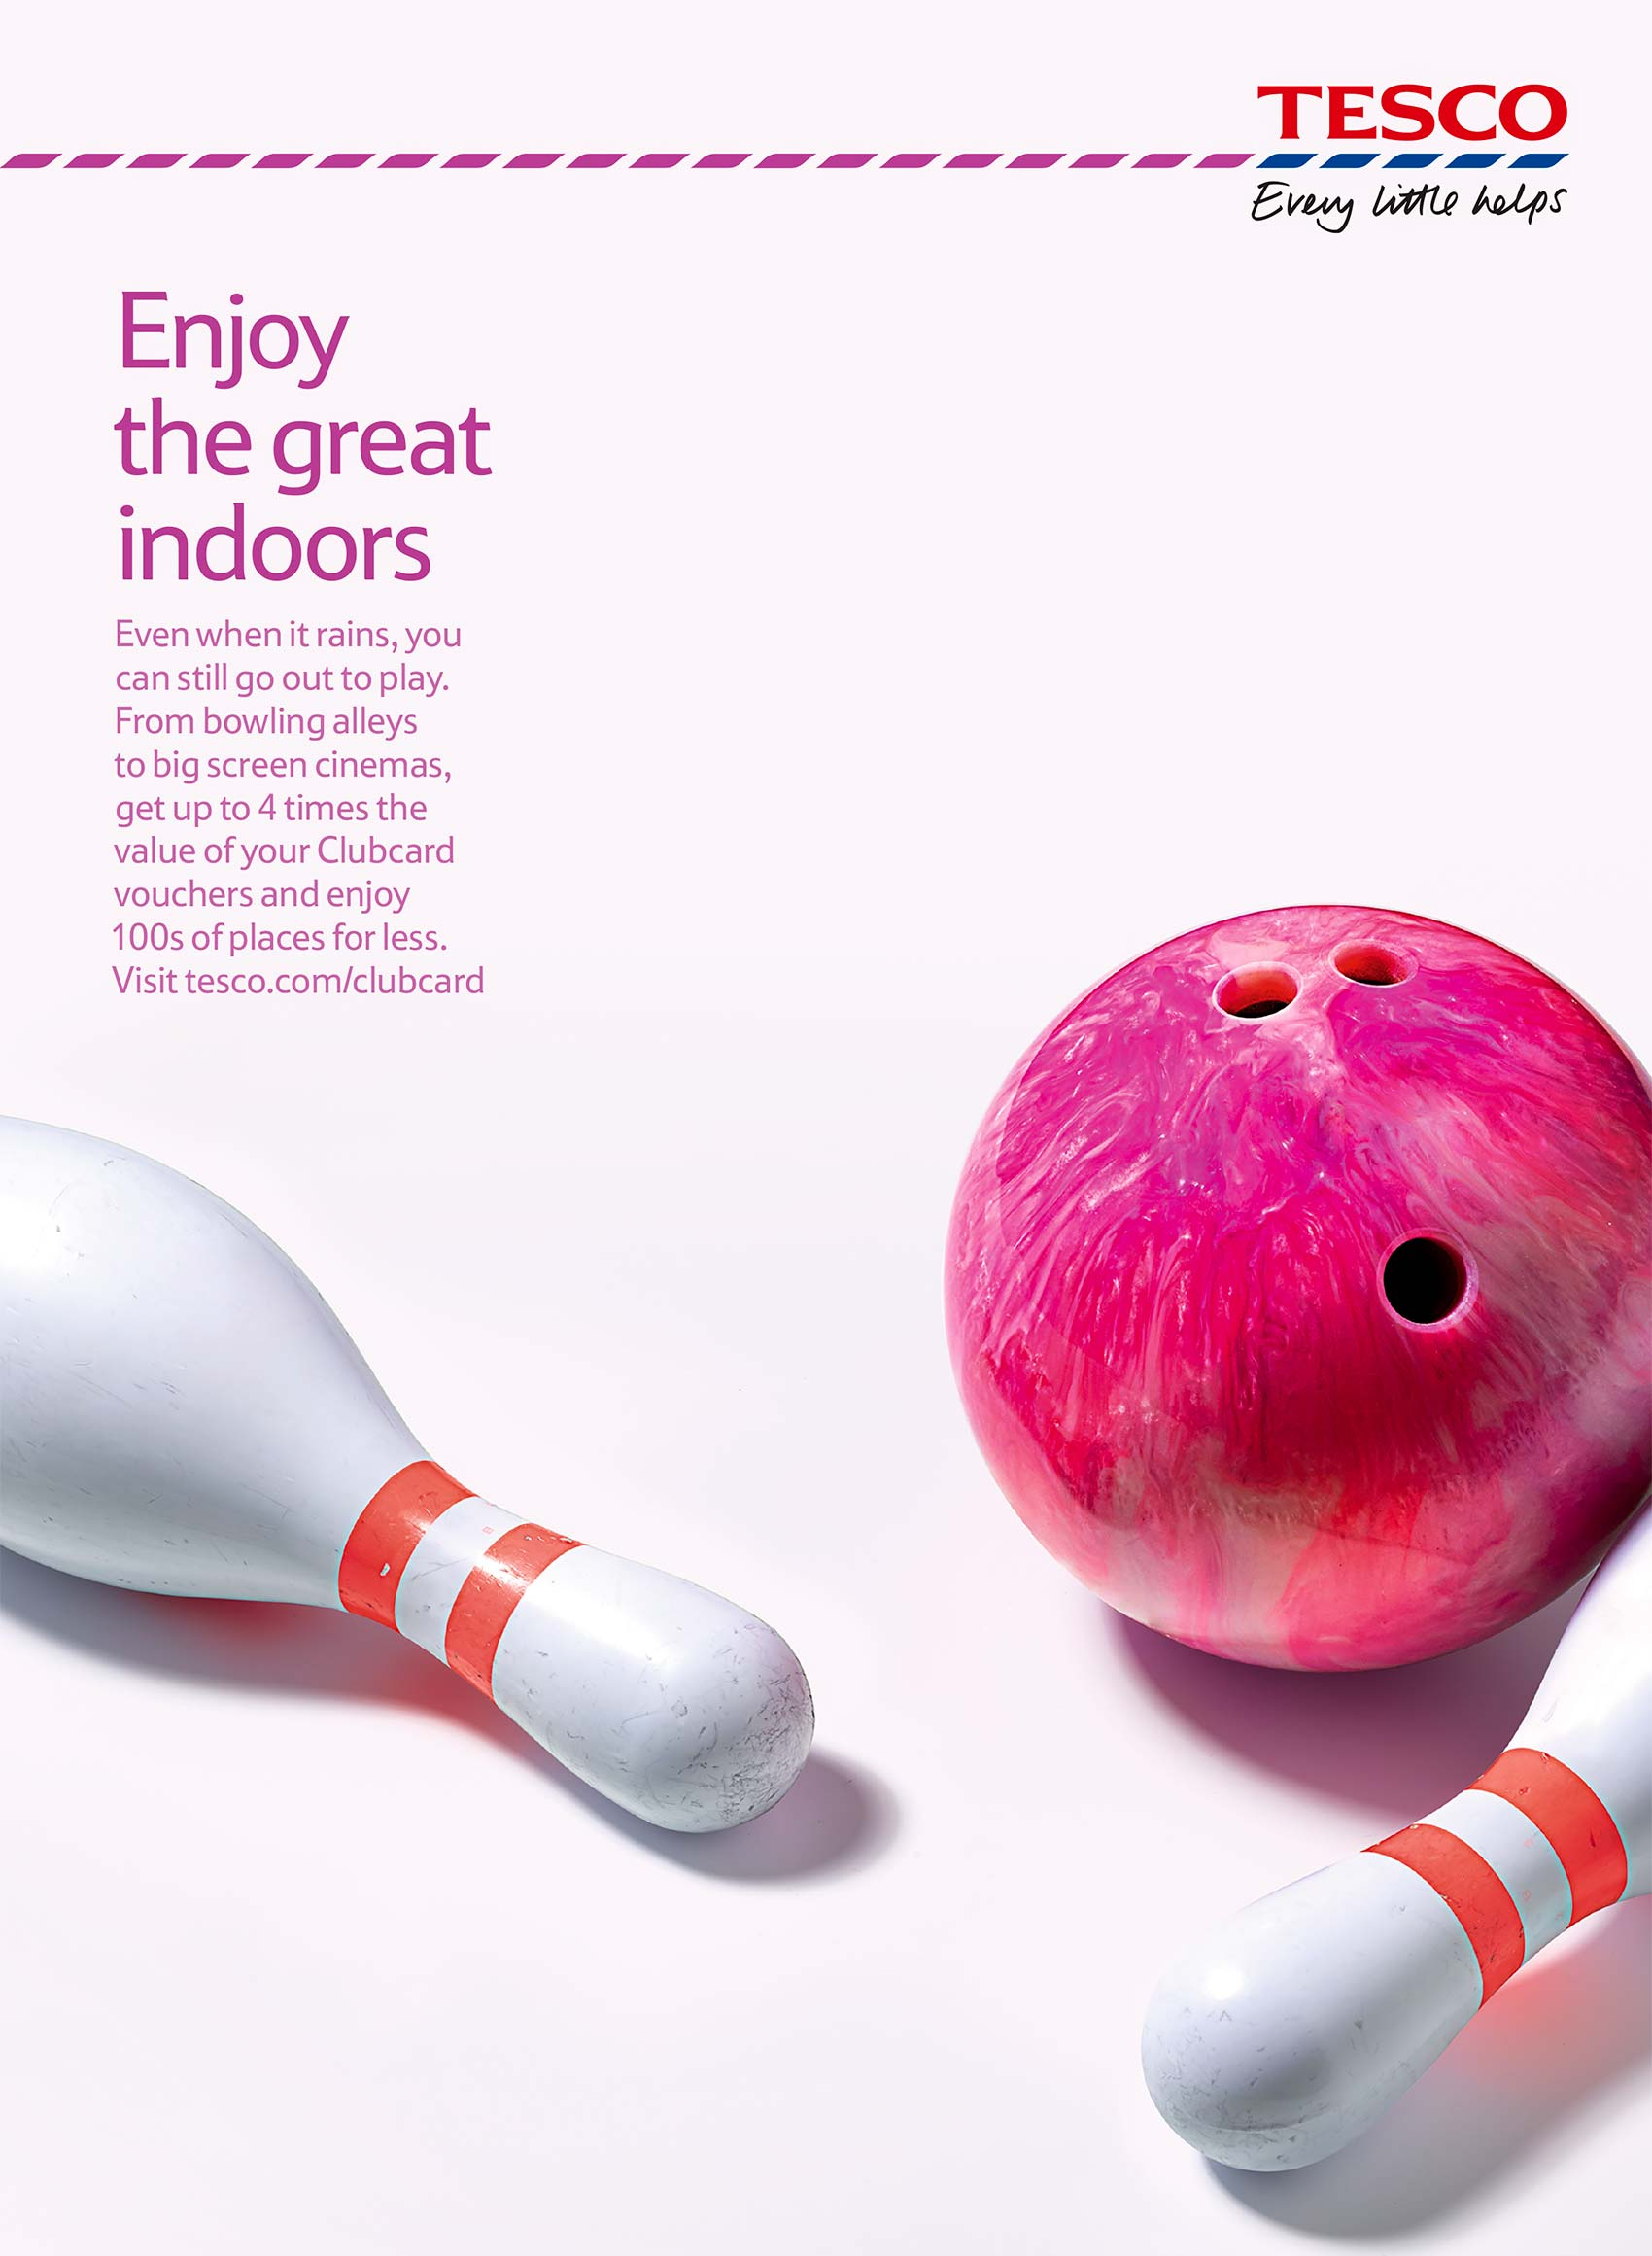 Tesco Bowling | Colin Campbell-Still Life Photographer